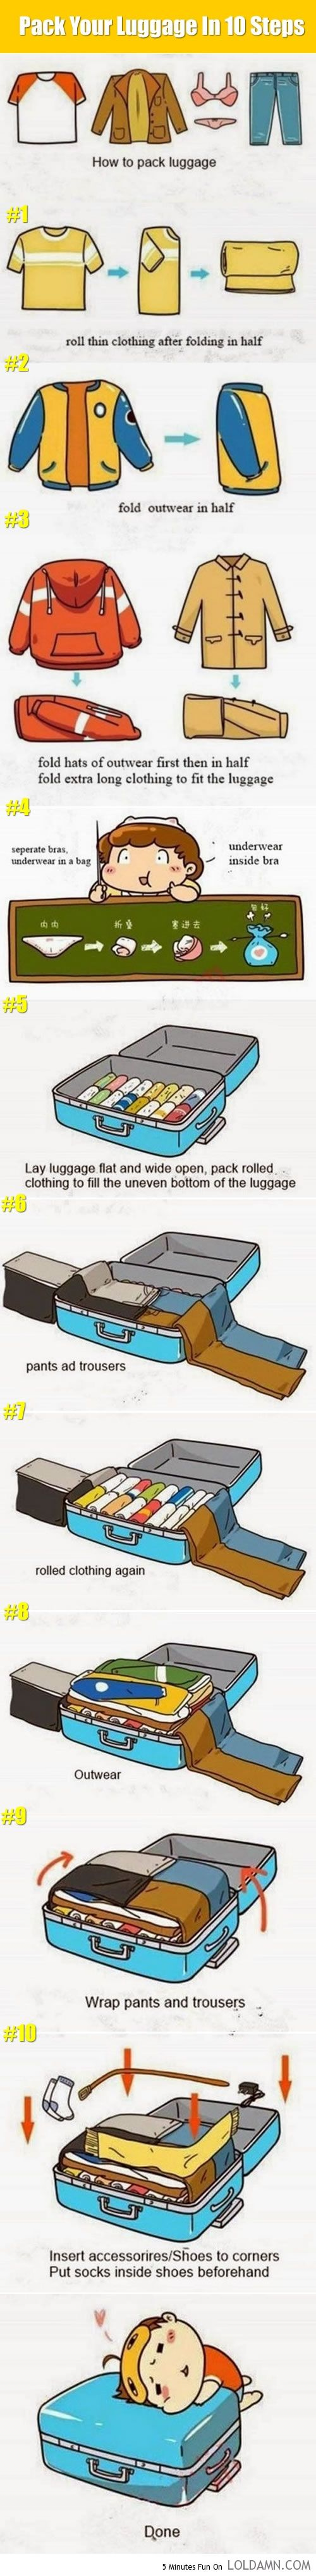 Preparing A Long Trip? Pack Your Luggage Like A Master.